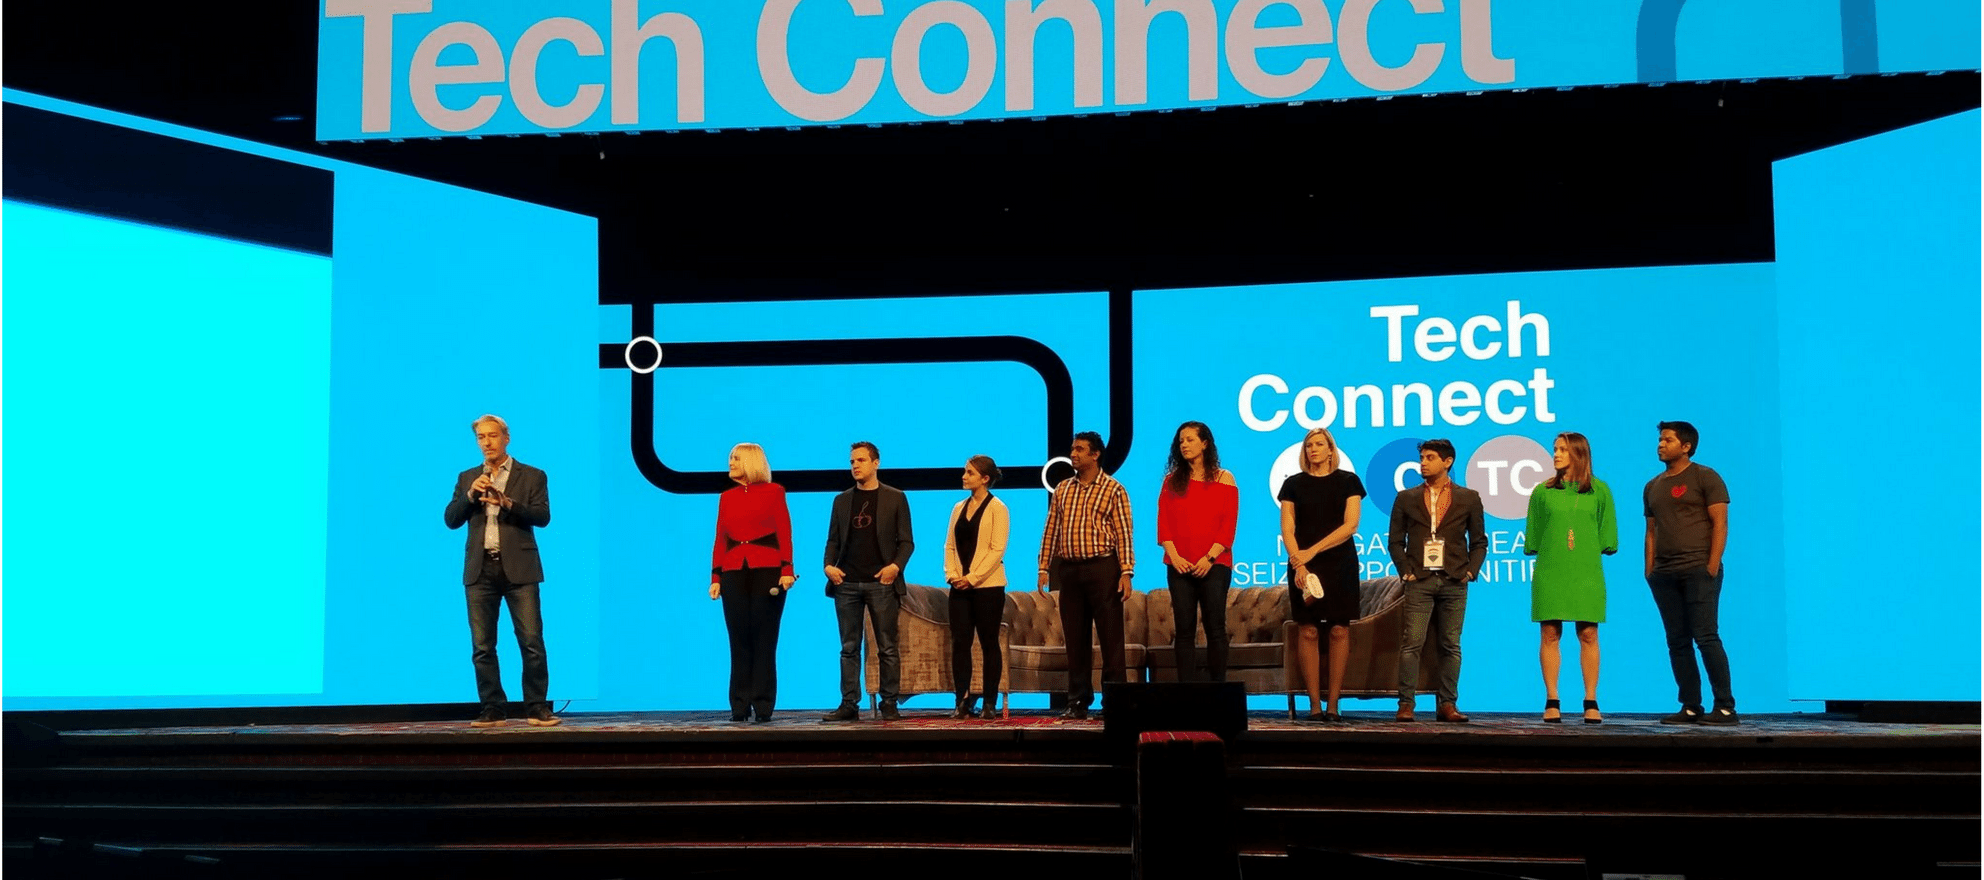 inman tech connect new york 2018 new kids on the block